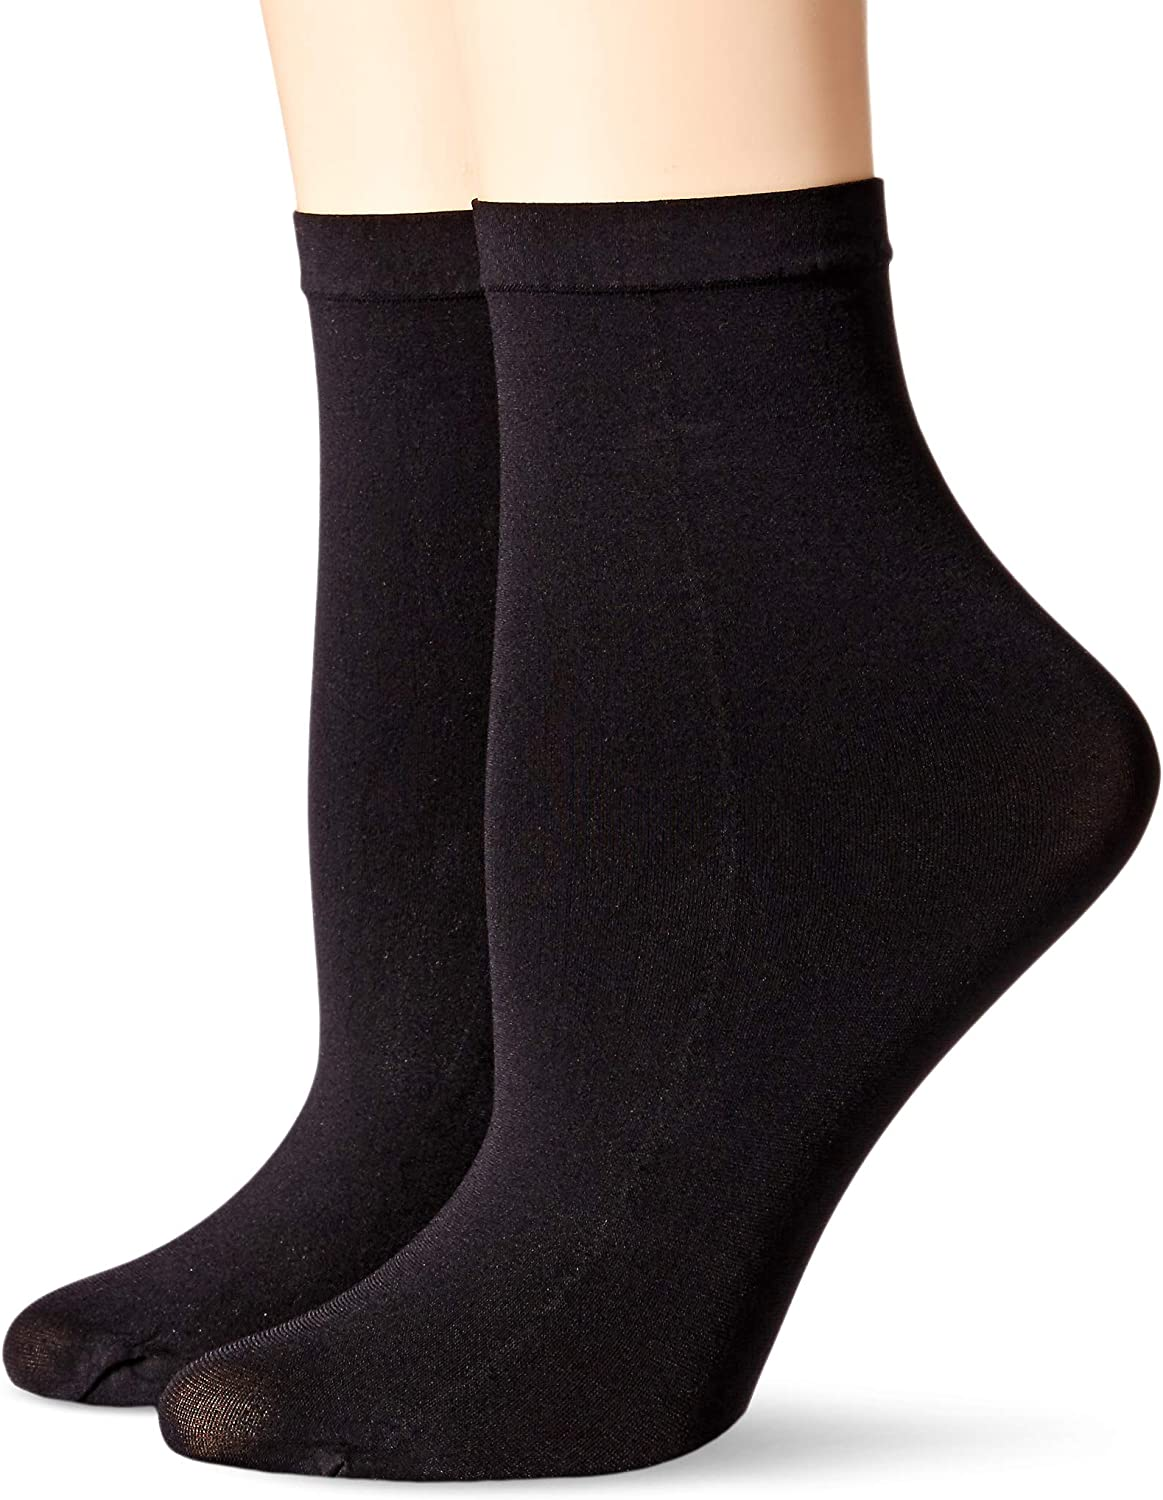 Hanes womens Hanes Perfect Socks Opaque Anklet